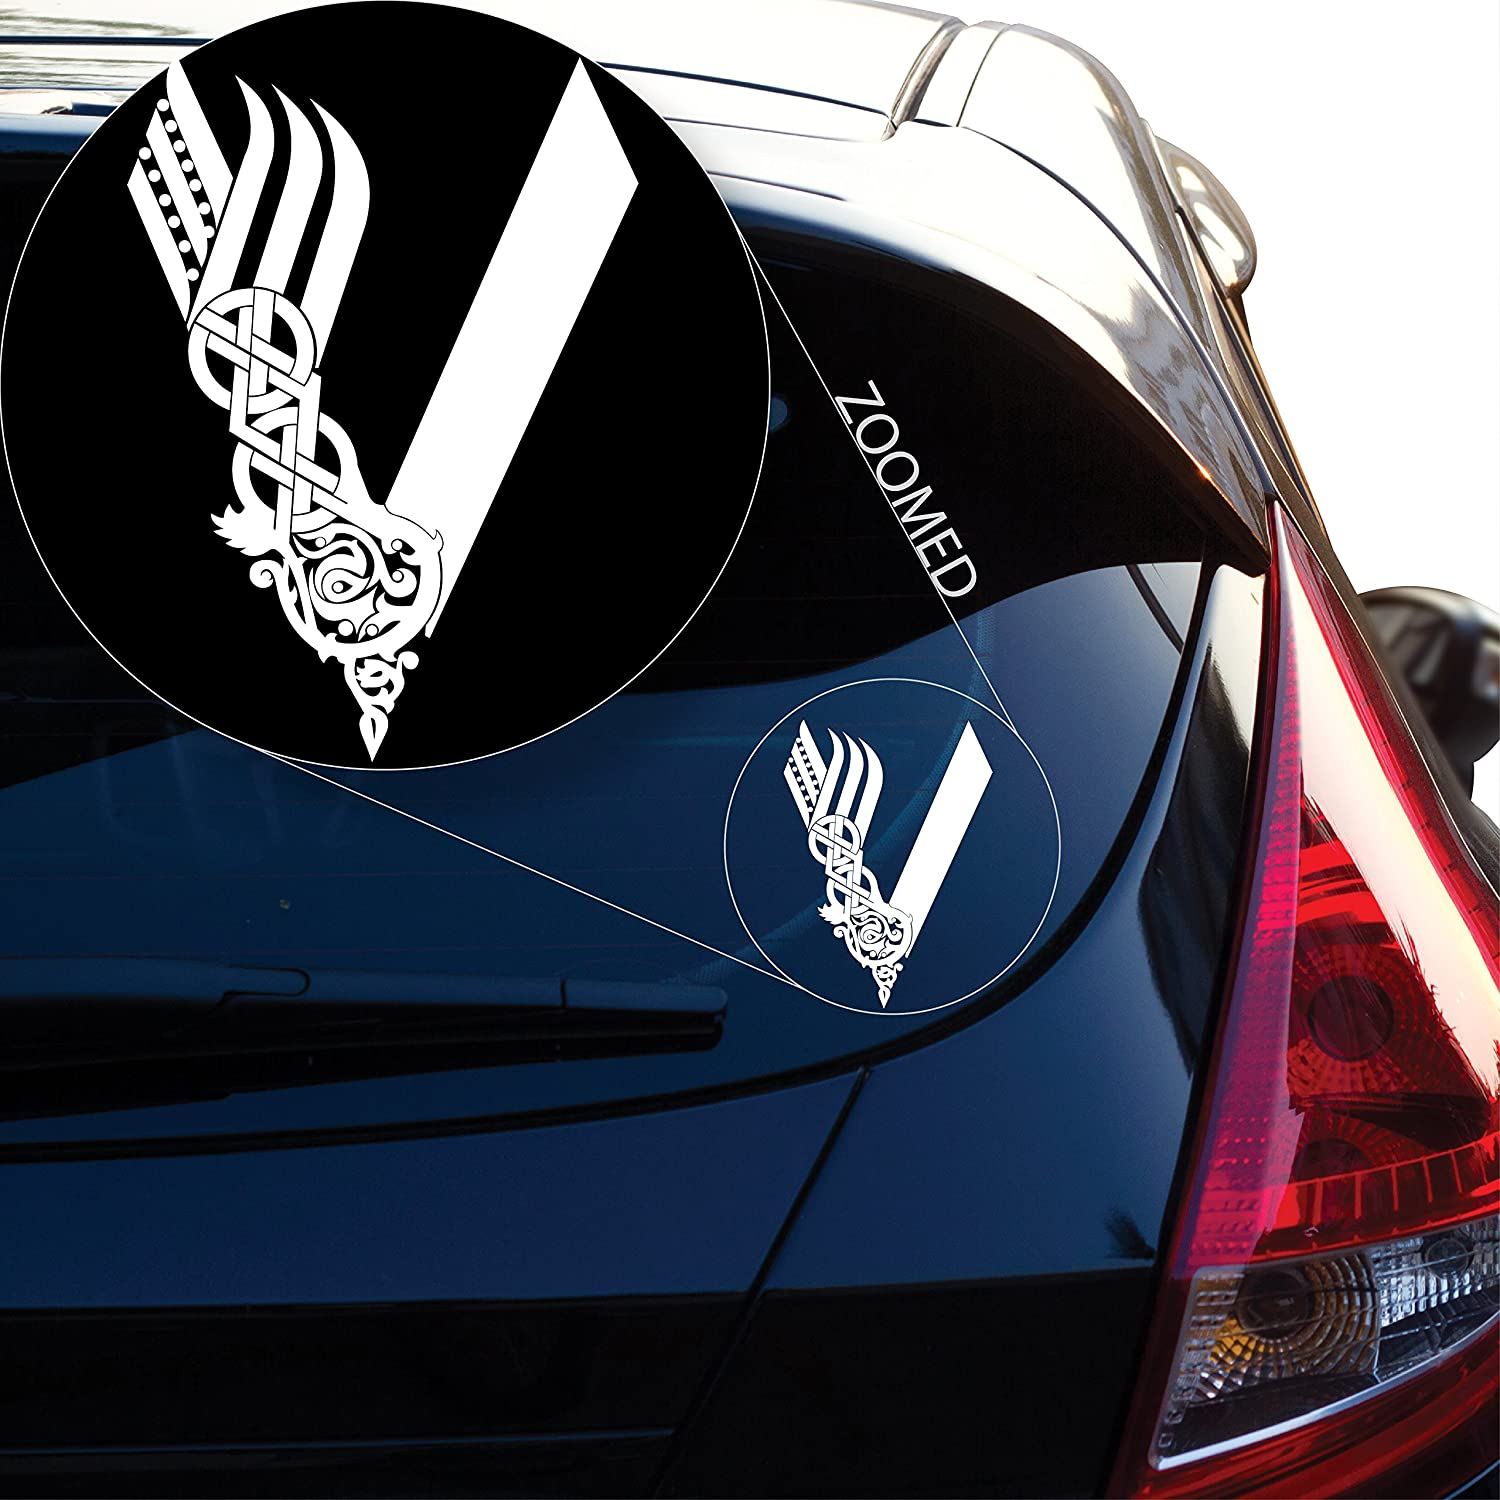 Vikings Tv Show Decal Sticker For Car Window Laptop And More 813 8 X 57 White